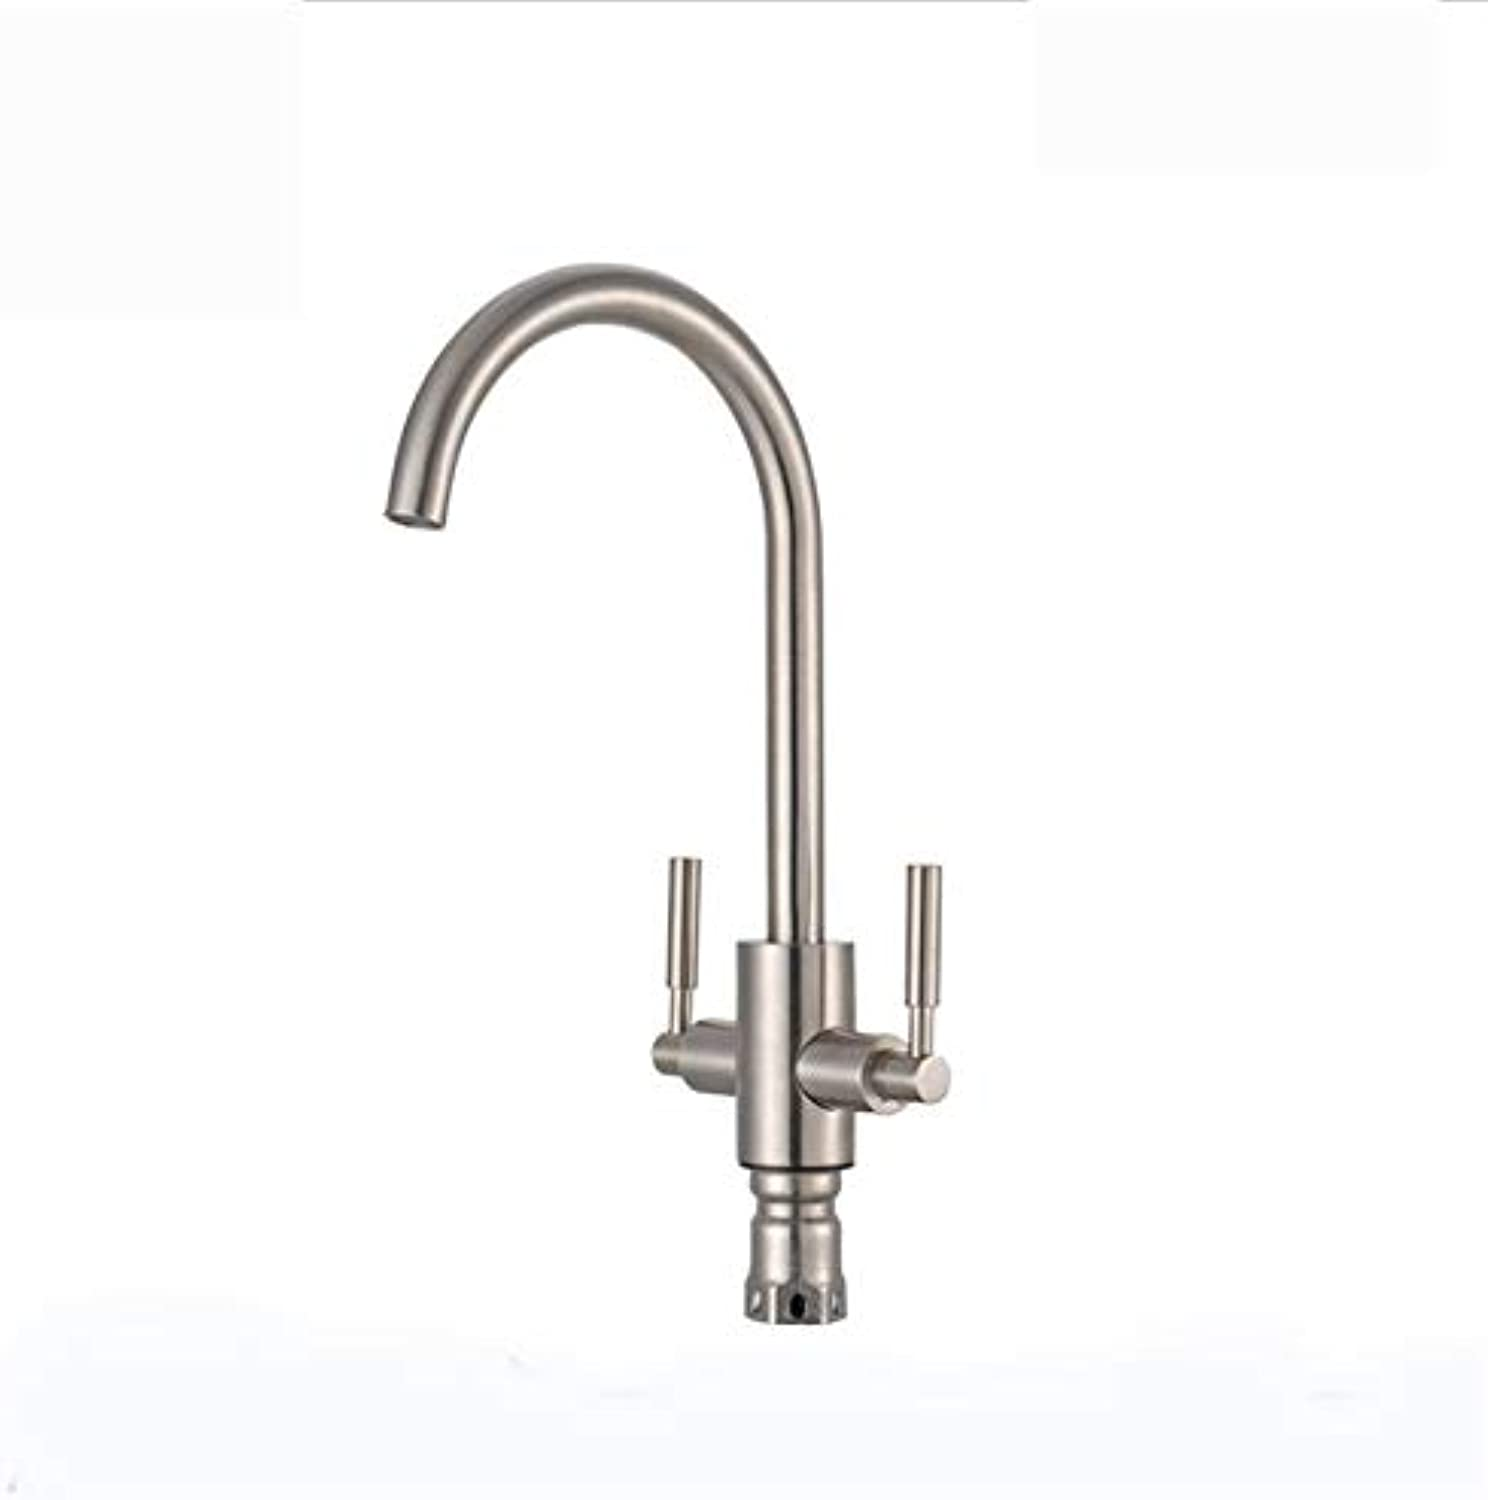 redOOY Taps 304 Stainless Steel Kitchen Faucet Sink Sink Brushed Faucet